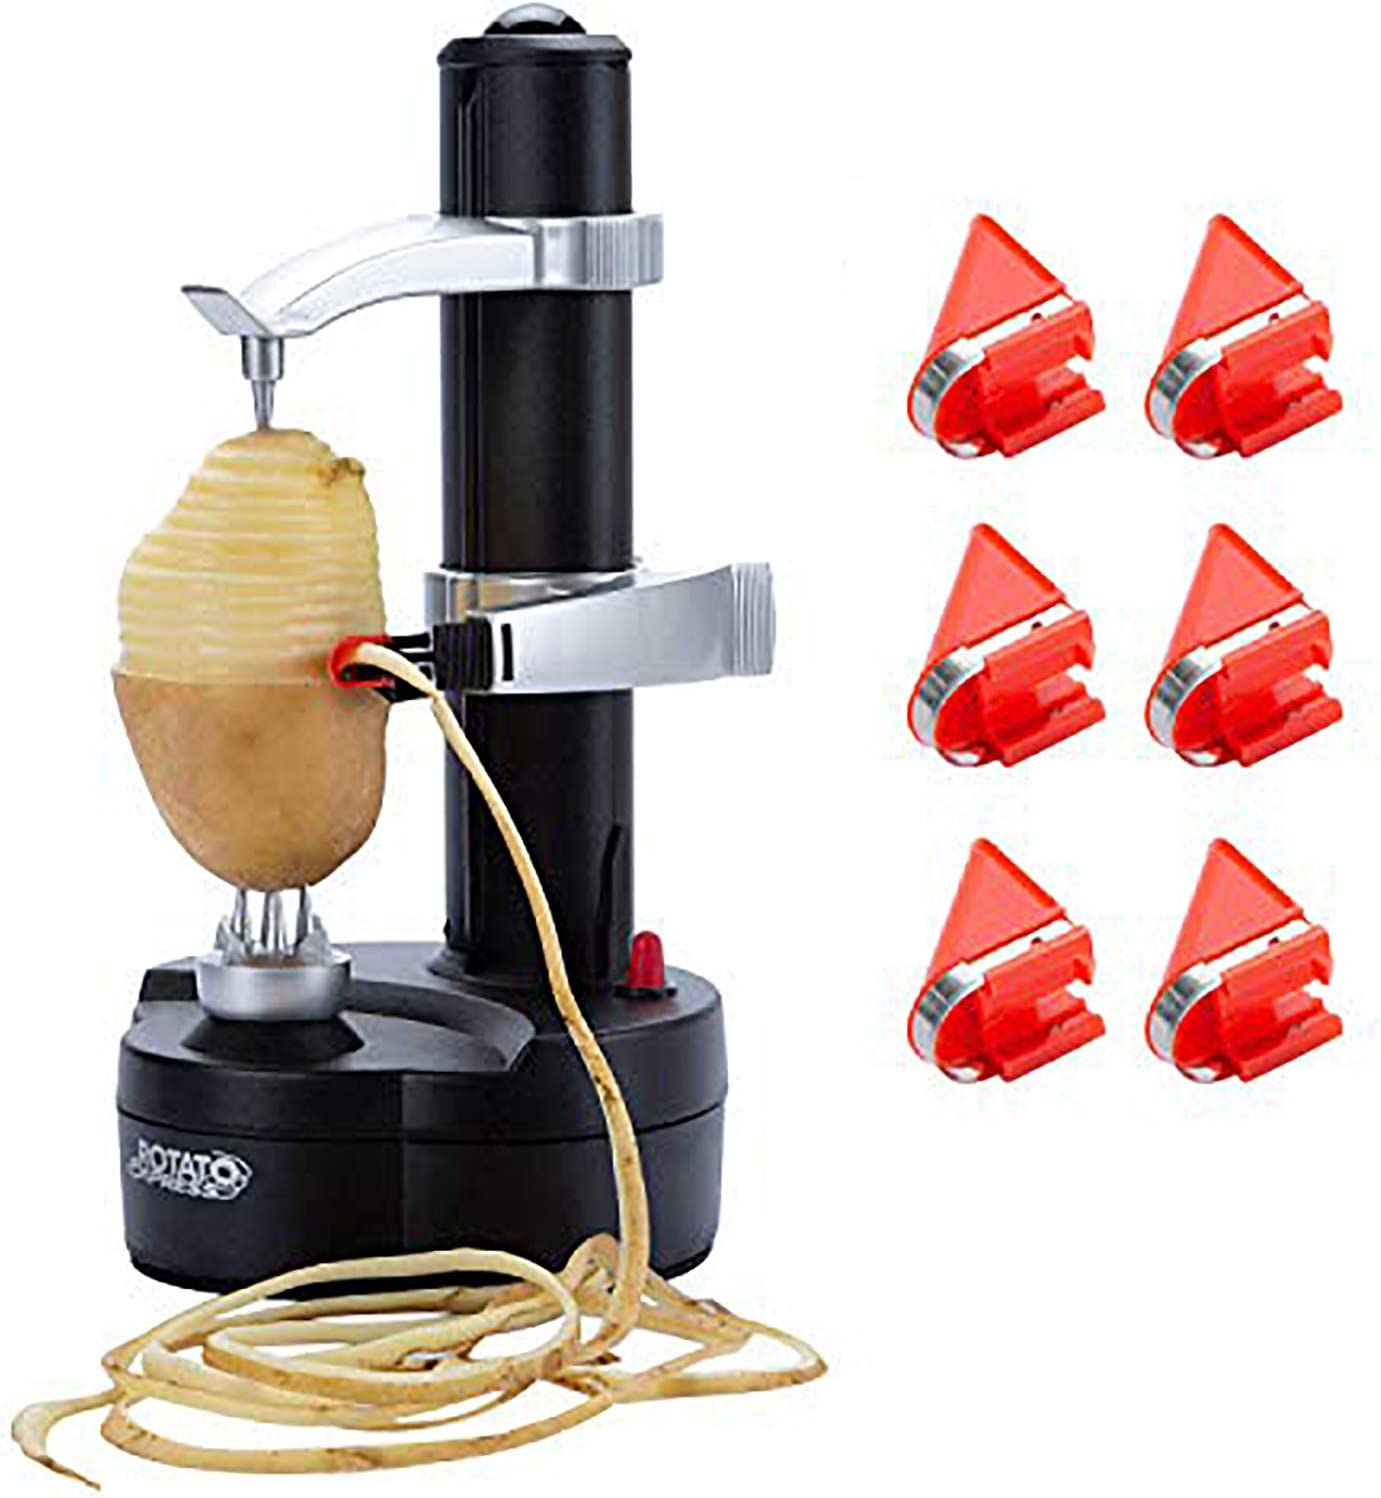 DRROT Automatic Electric Potato OFFicial New Free Shipping Peeler Blades - Replacement 6